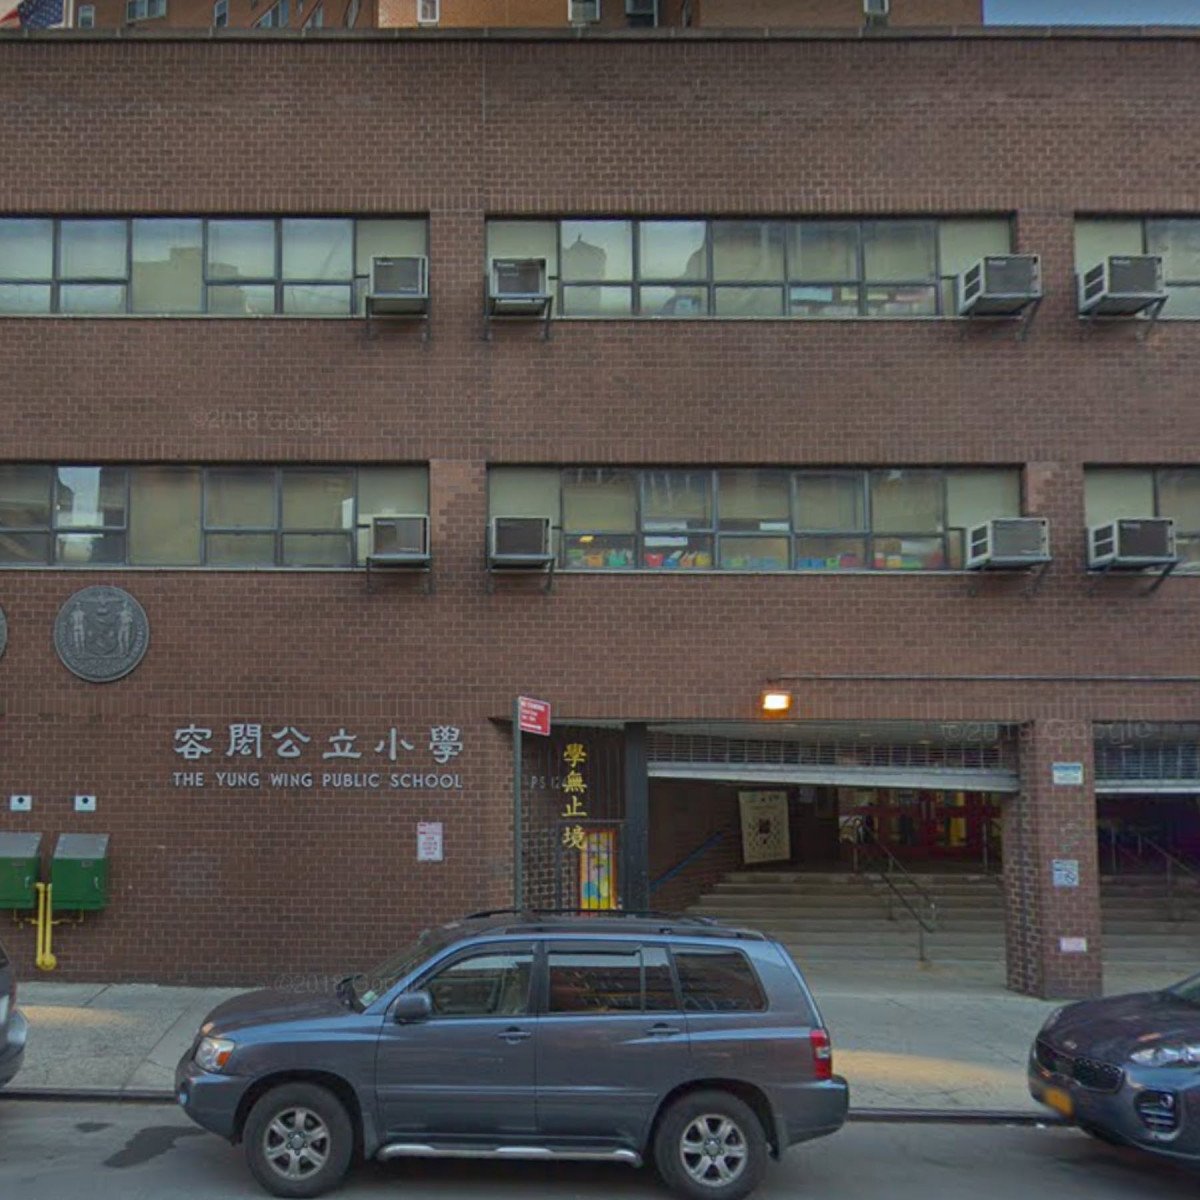 P.S. 124 Yung Wing School